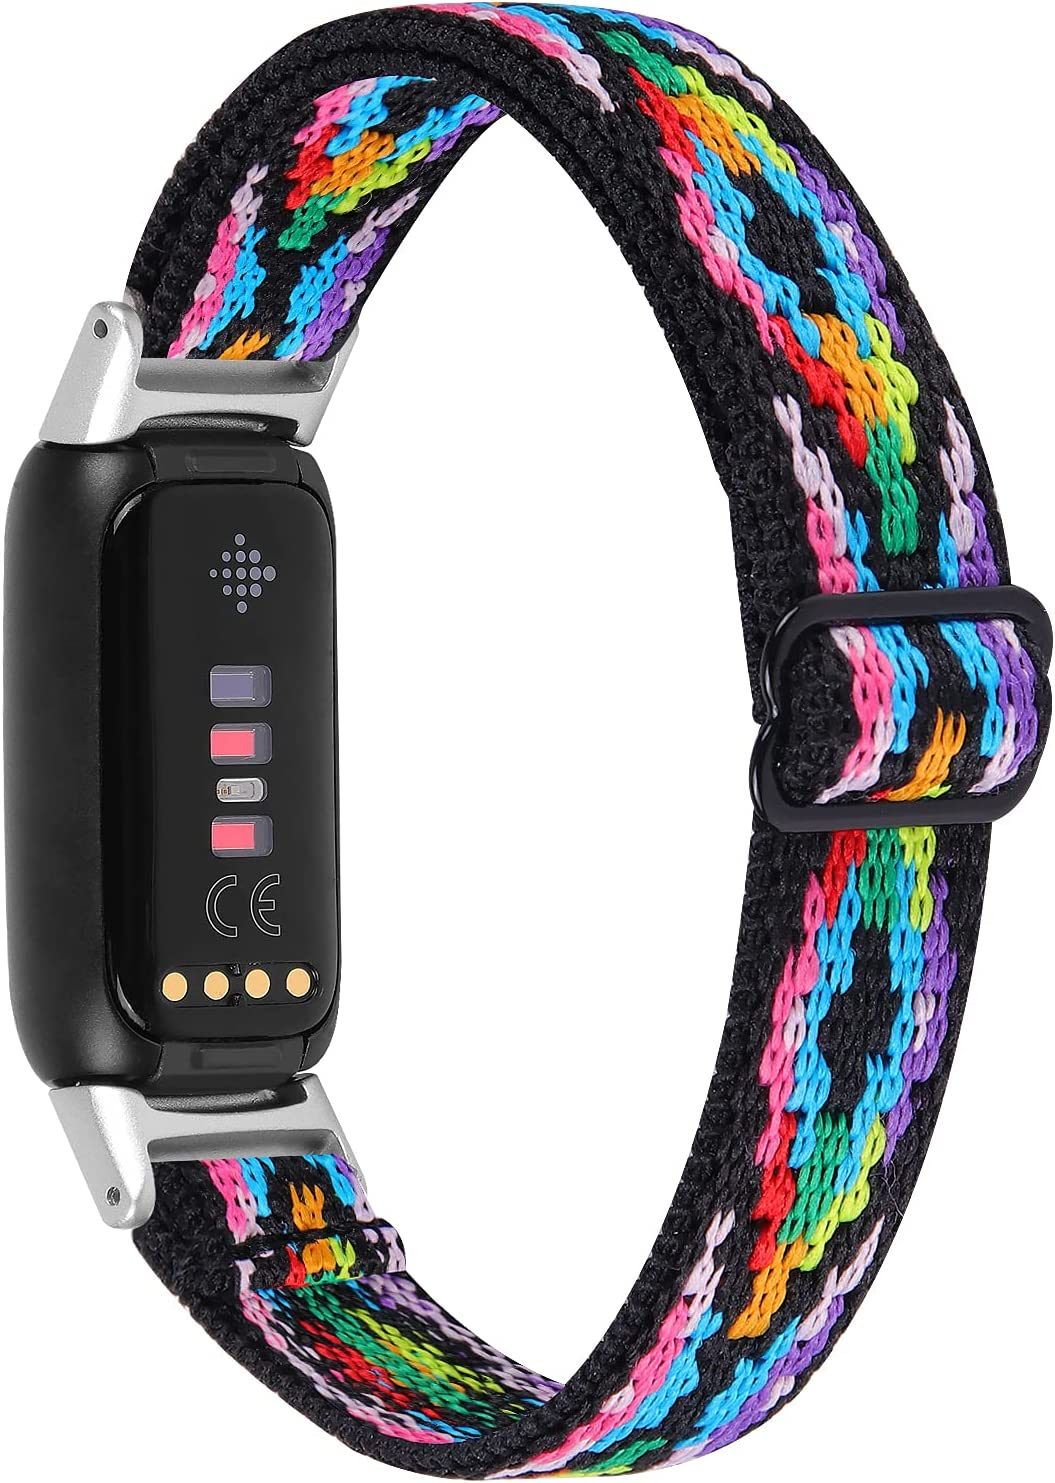 OCEBEEC Stretchy Sport Bands Compatible with Fitbit Luxe, Adjustable Elastic Nylon Wristband Replacement for Fitbit Luxe Fitness and Wellness Tracker for Women Men(Aztec Style Colorful)